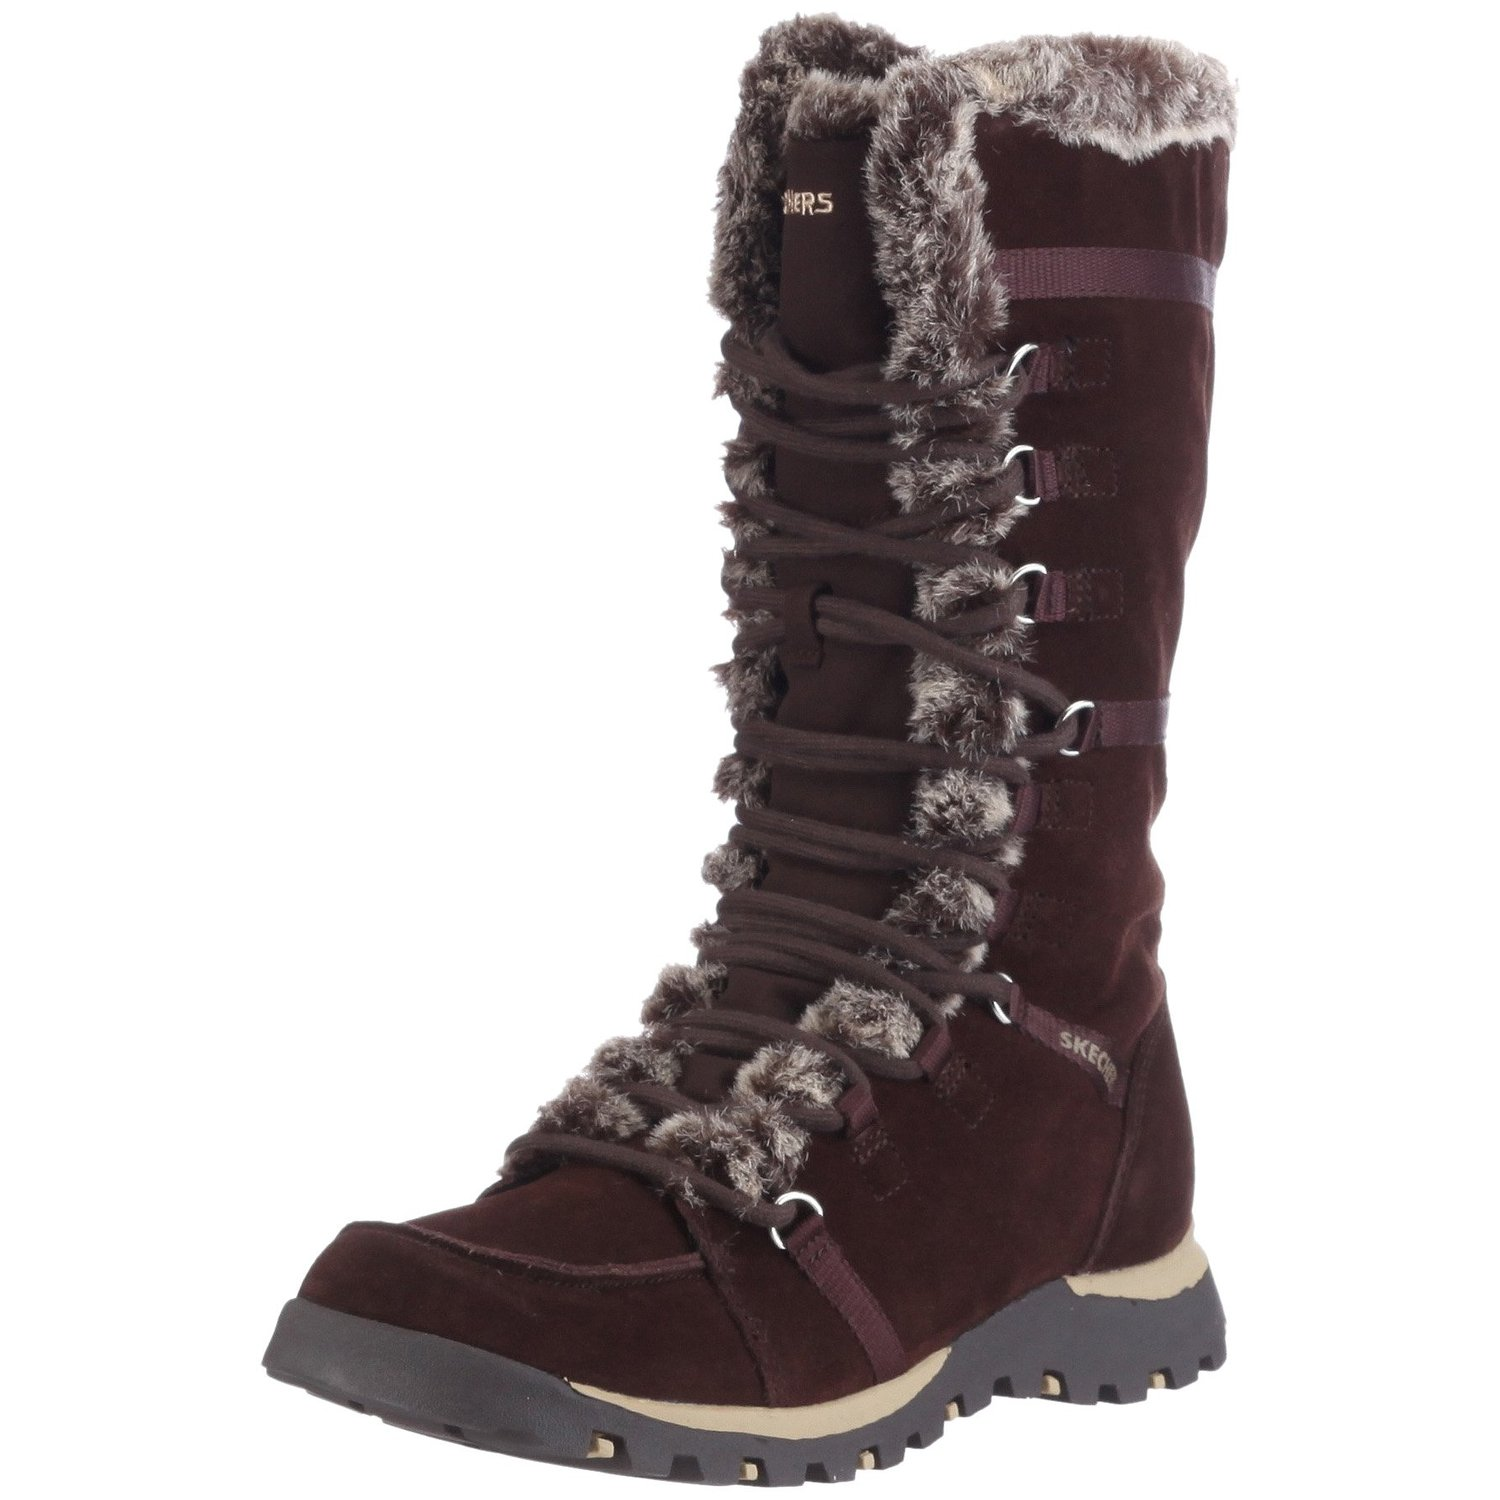 Skechers Grand Jams Unlimited Mid Calf High Boot